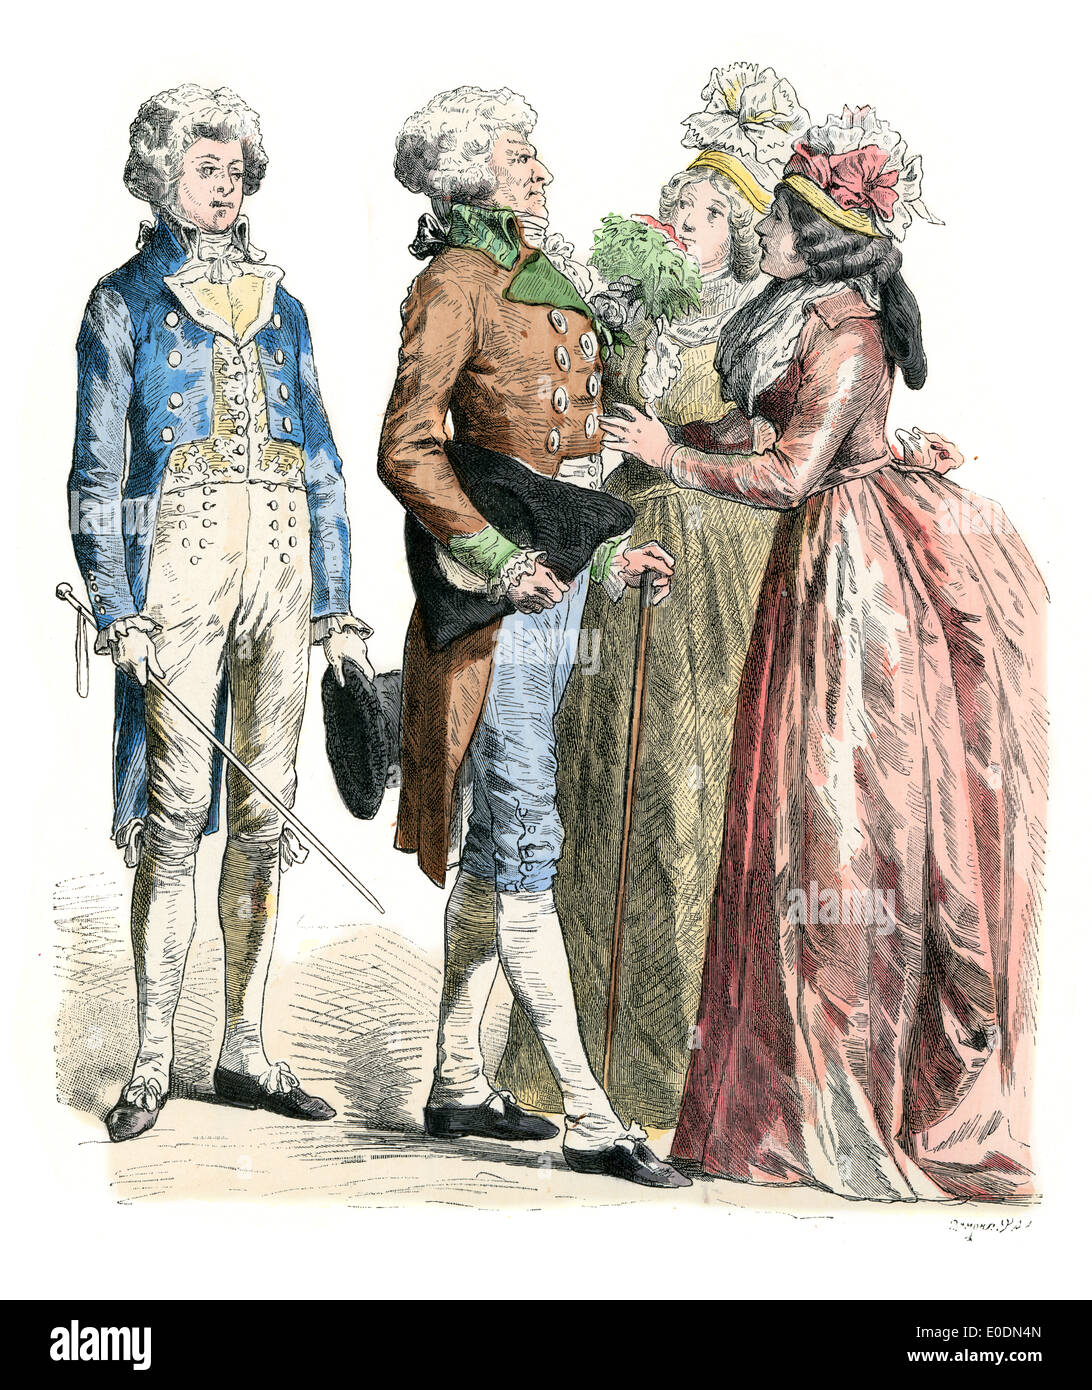 traditional costumes of men and women of the late th  traditional costumes of men and women of the late 18th century